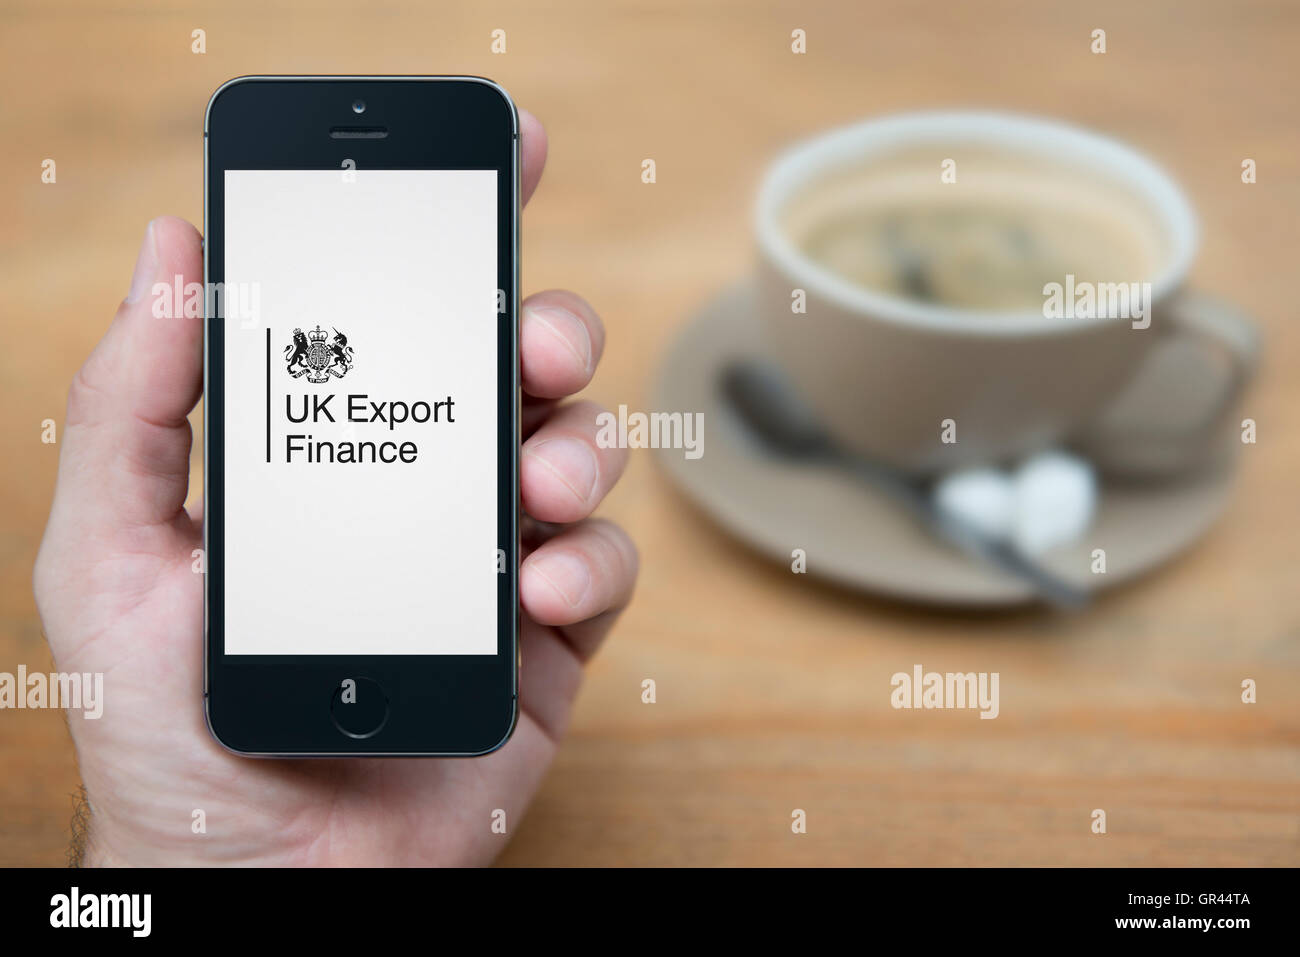 A man looks at his iPhone which displays the UK Government UK Export Finance logo (Editorial use only). - Stock Image